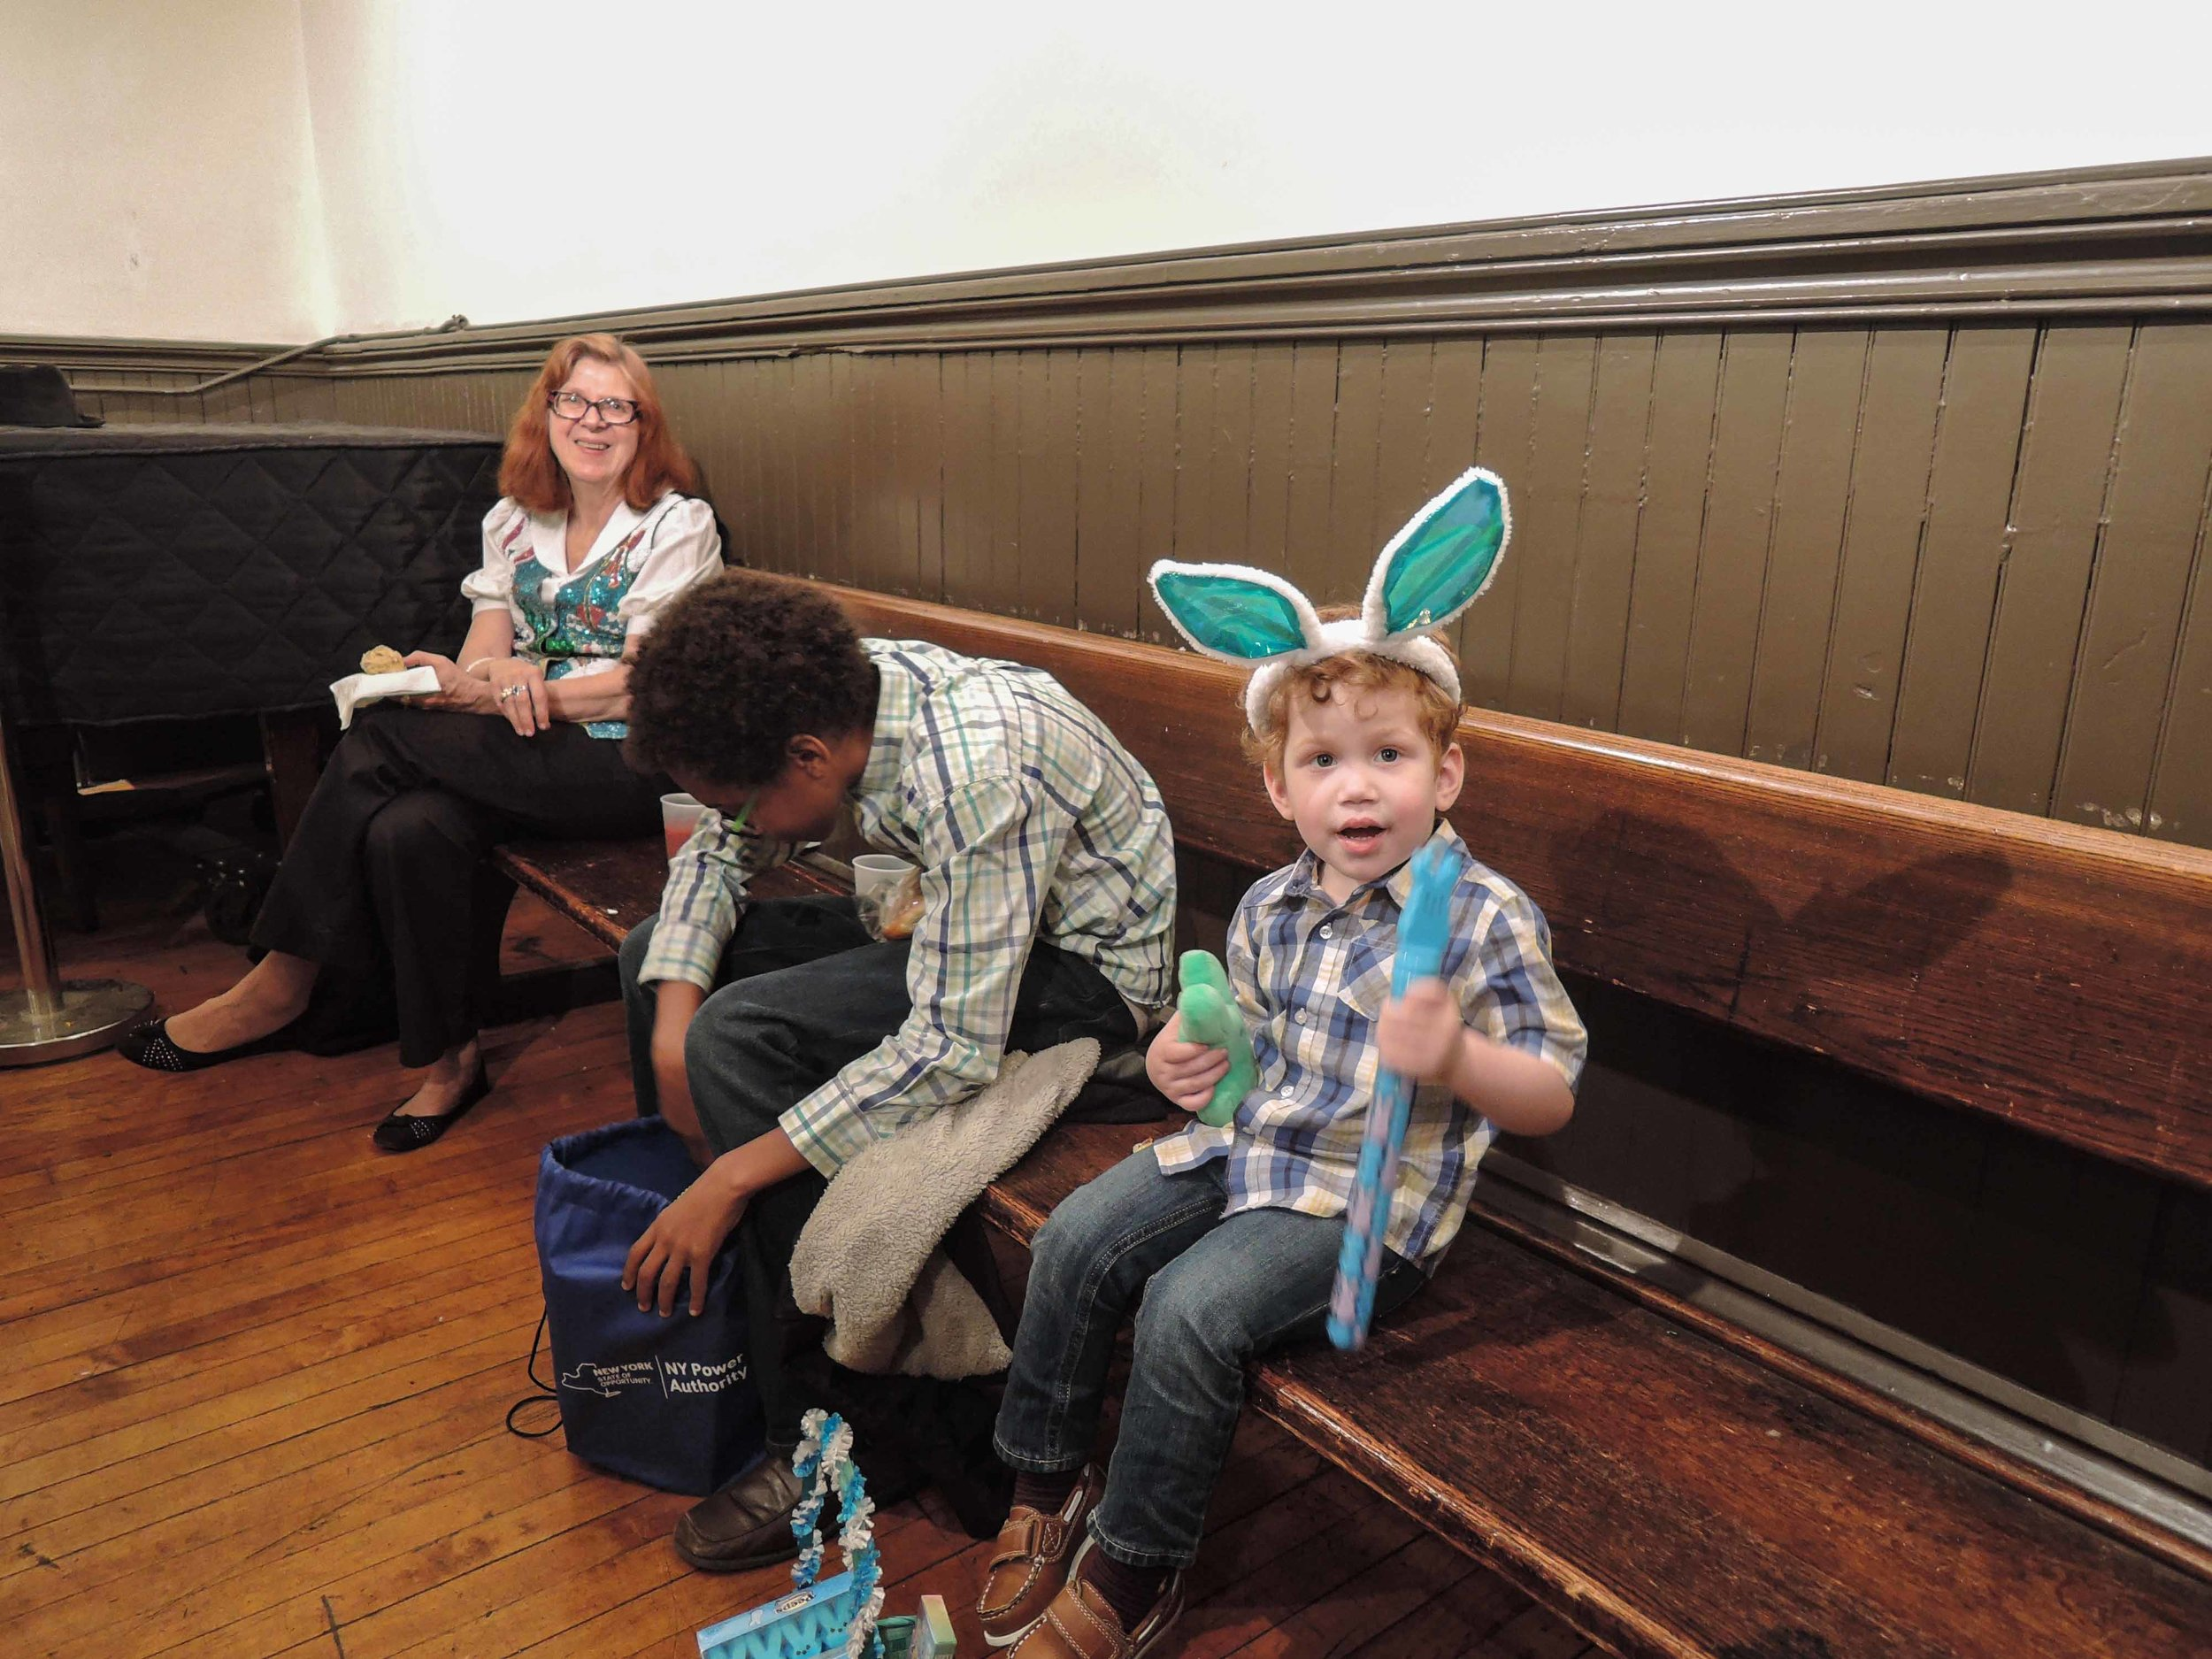 More Smiles on Easter Day